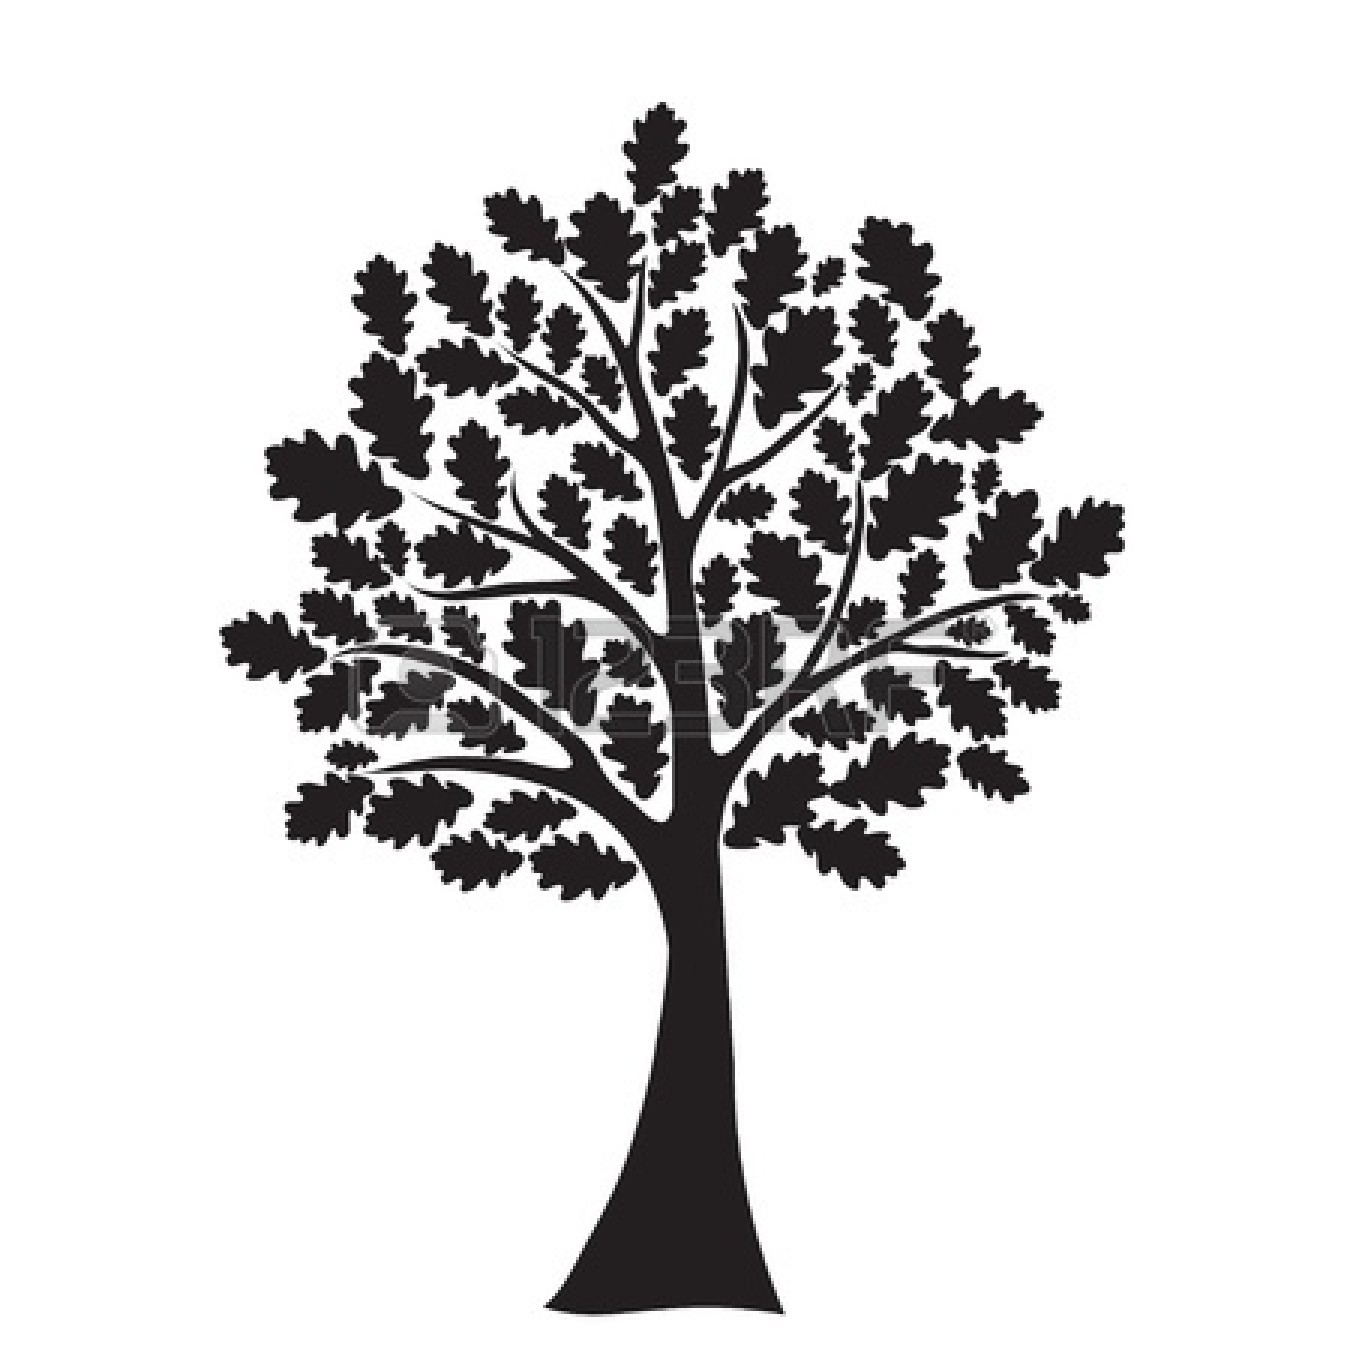 Oak Tree Clipart Black And White 2 Clipart Station